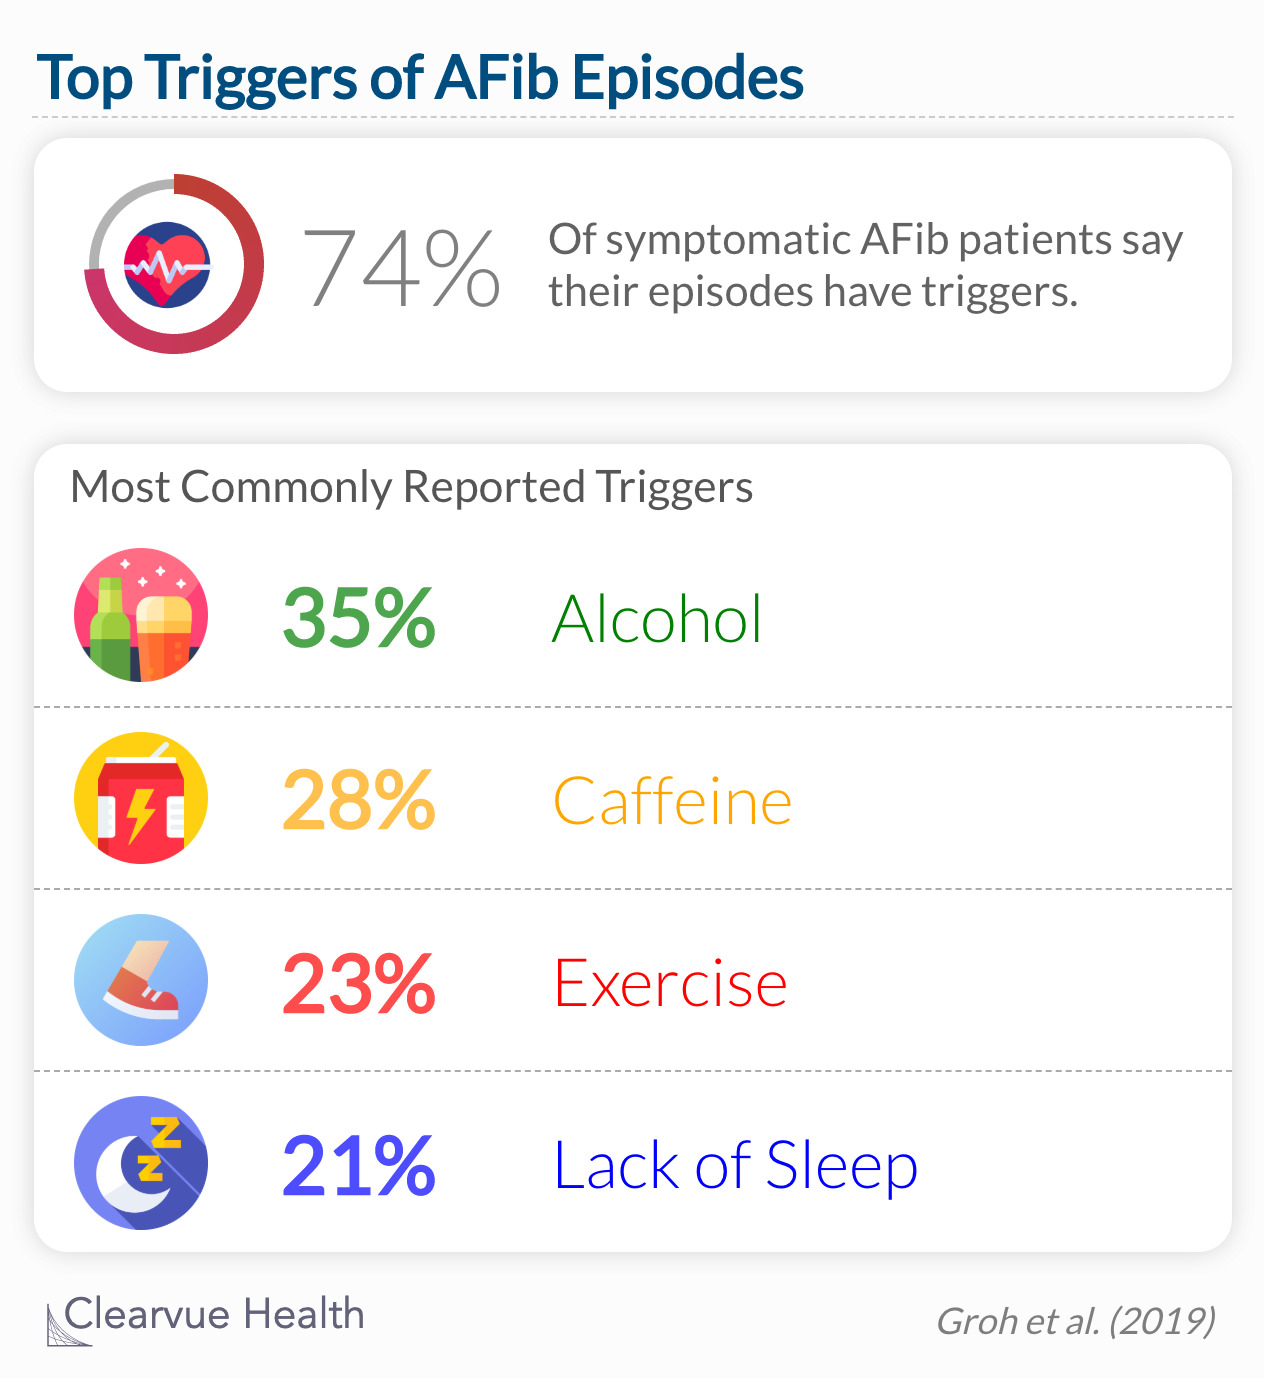 Of 1295 participants with symptomatic AF, 957 (74%) reported triggers for episodes of AF.